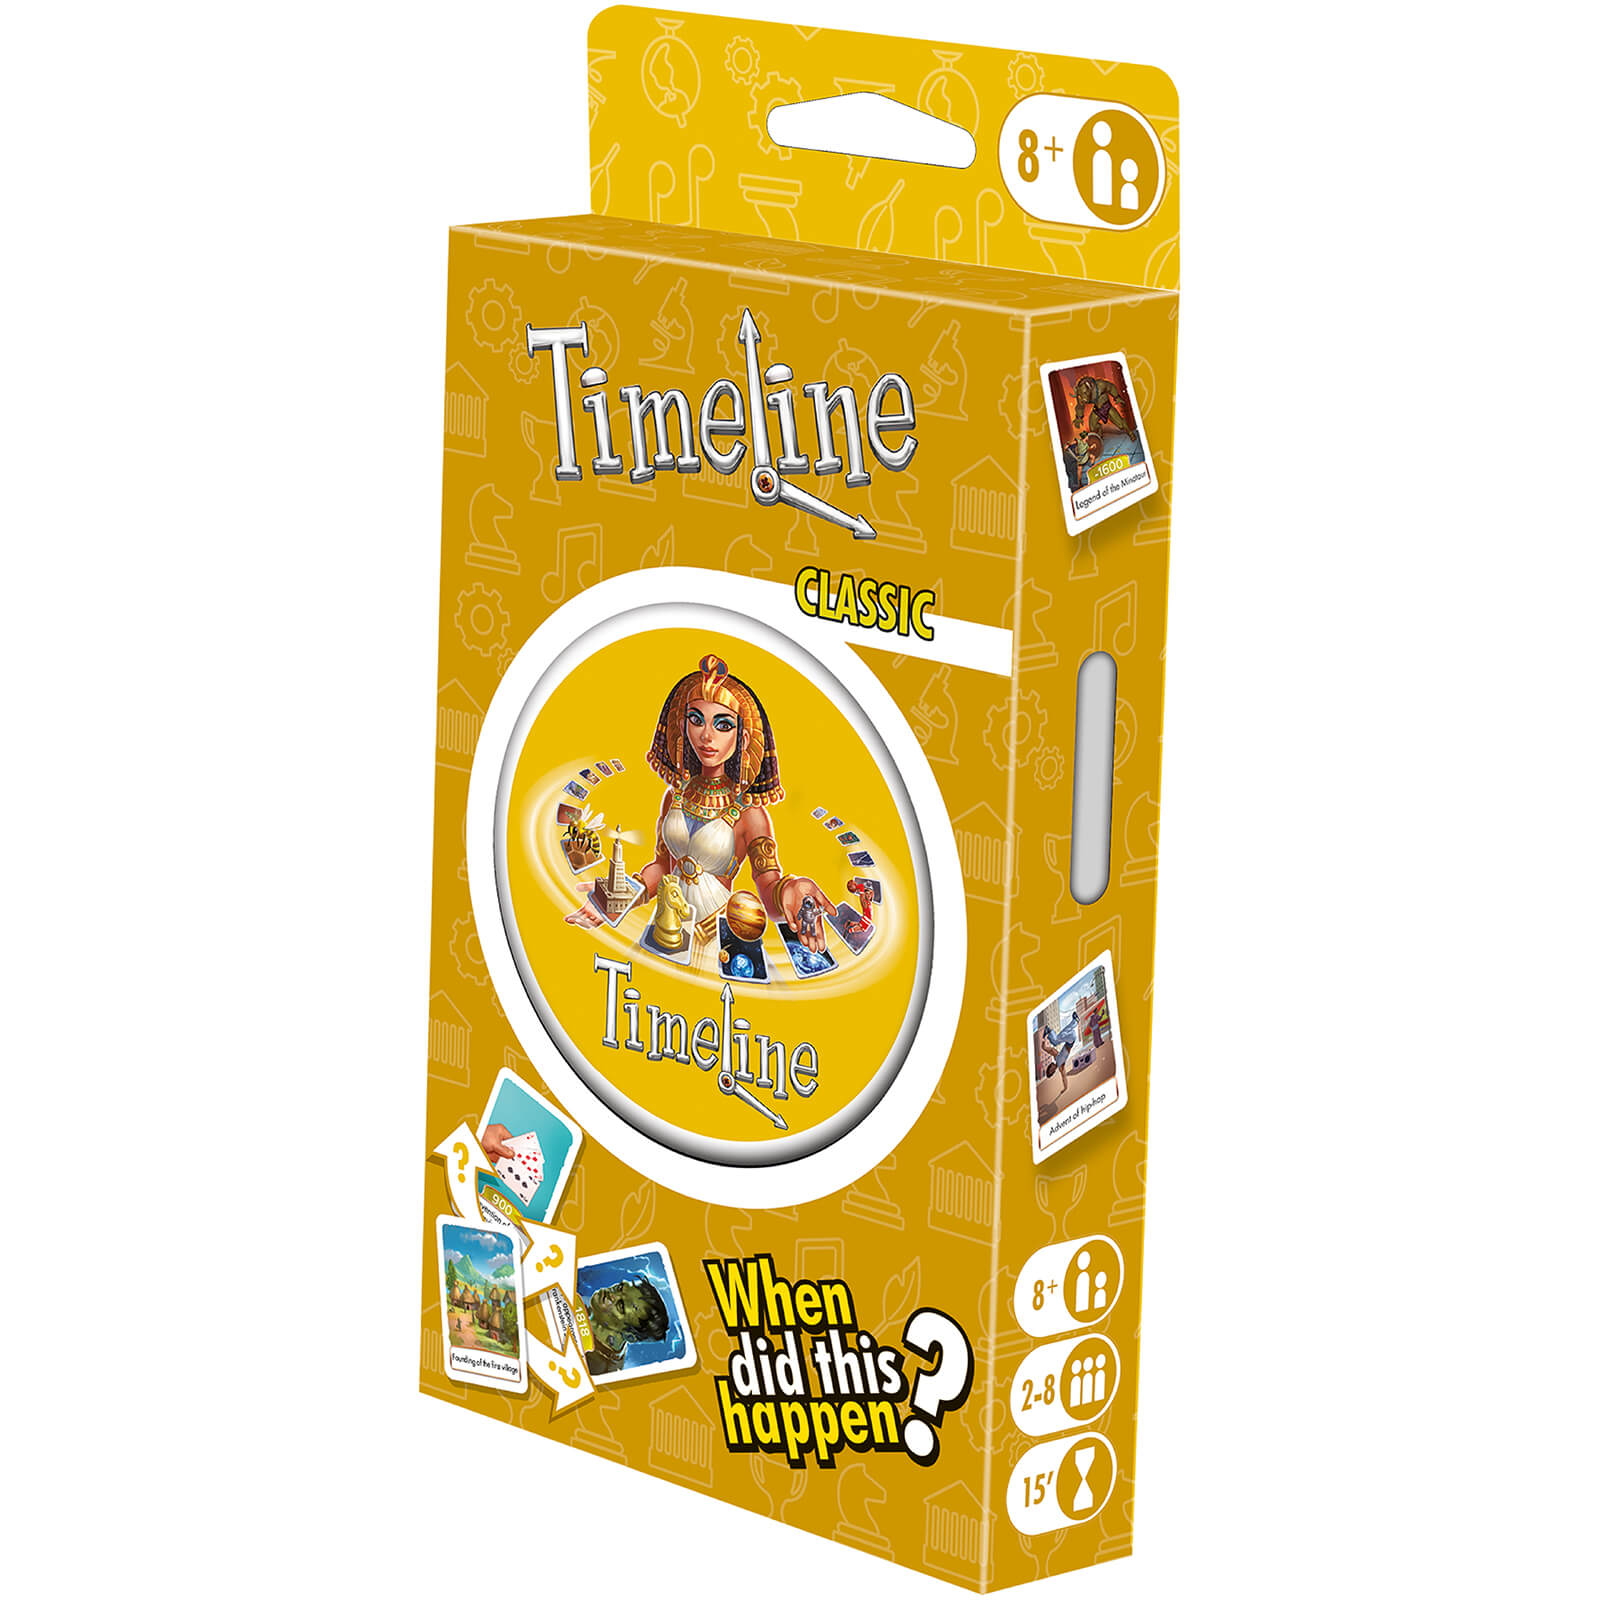 Image of Timeline Card Game - Classic Edition